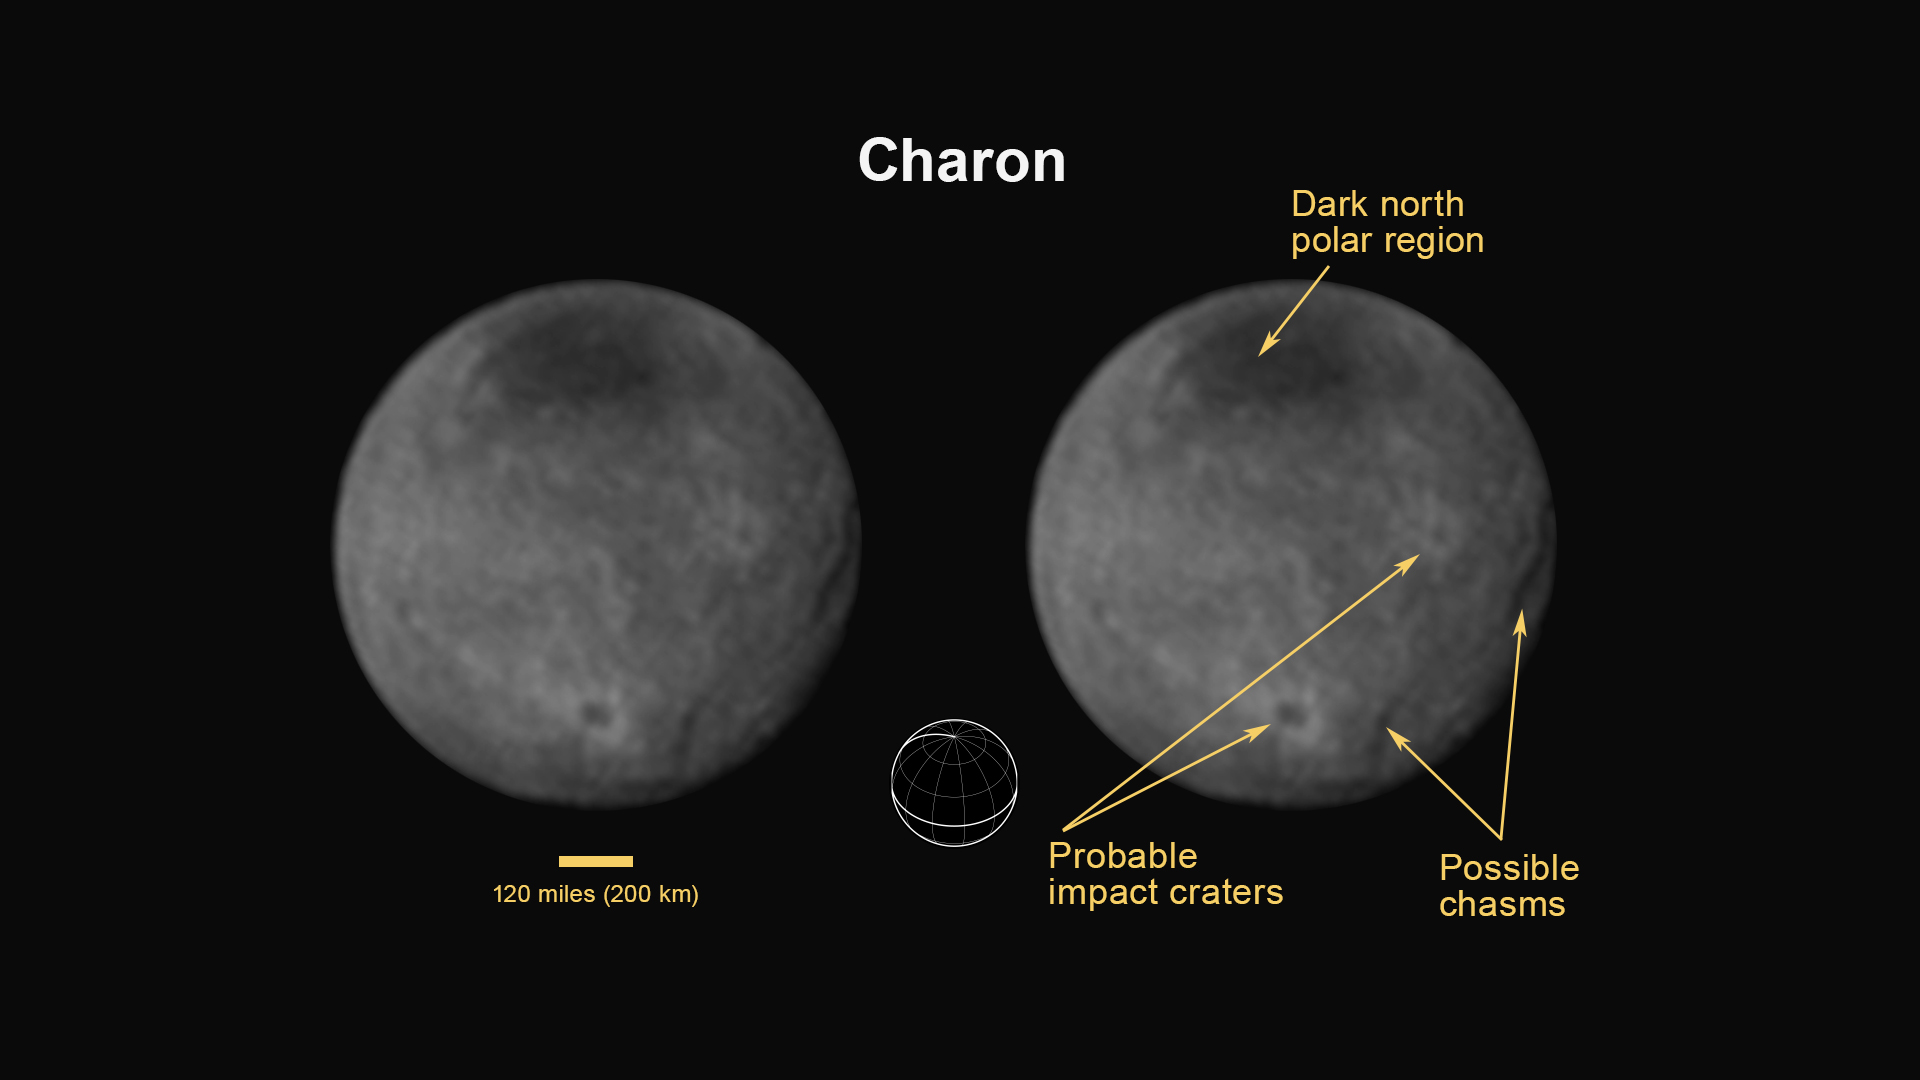 A shot of Pluto's moon Charon shows apparent impact craters, chasms and a puzzling dark region near the moon's north pole. Credit: NASA/JHUAPL/SWRI